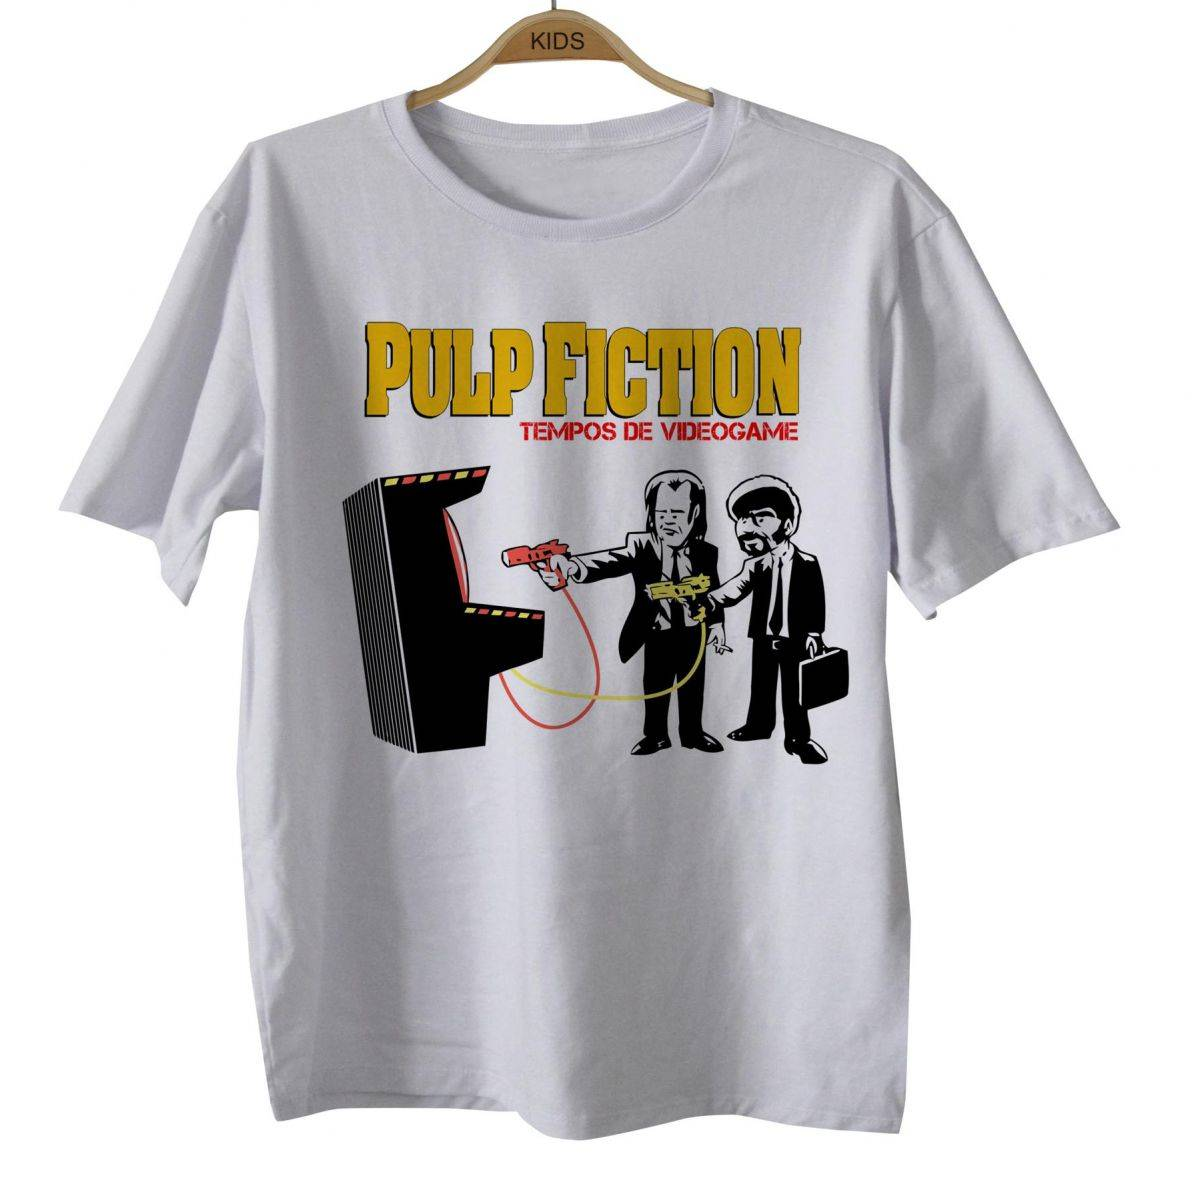 Camiseta Infantil Movies - Pulp Fiction Tempo de Game - Tarantino - White  - Baby Monster S/A